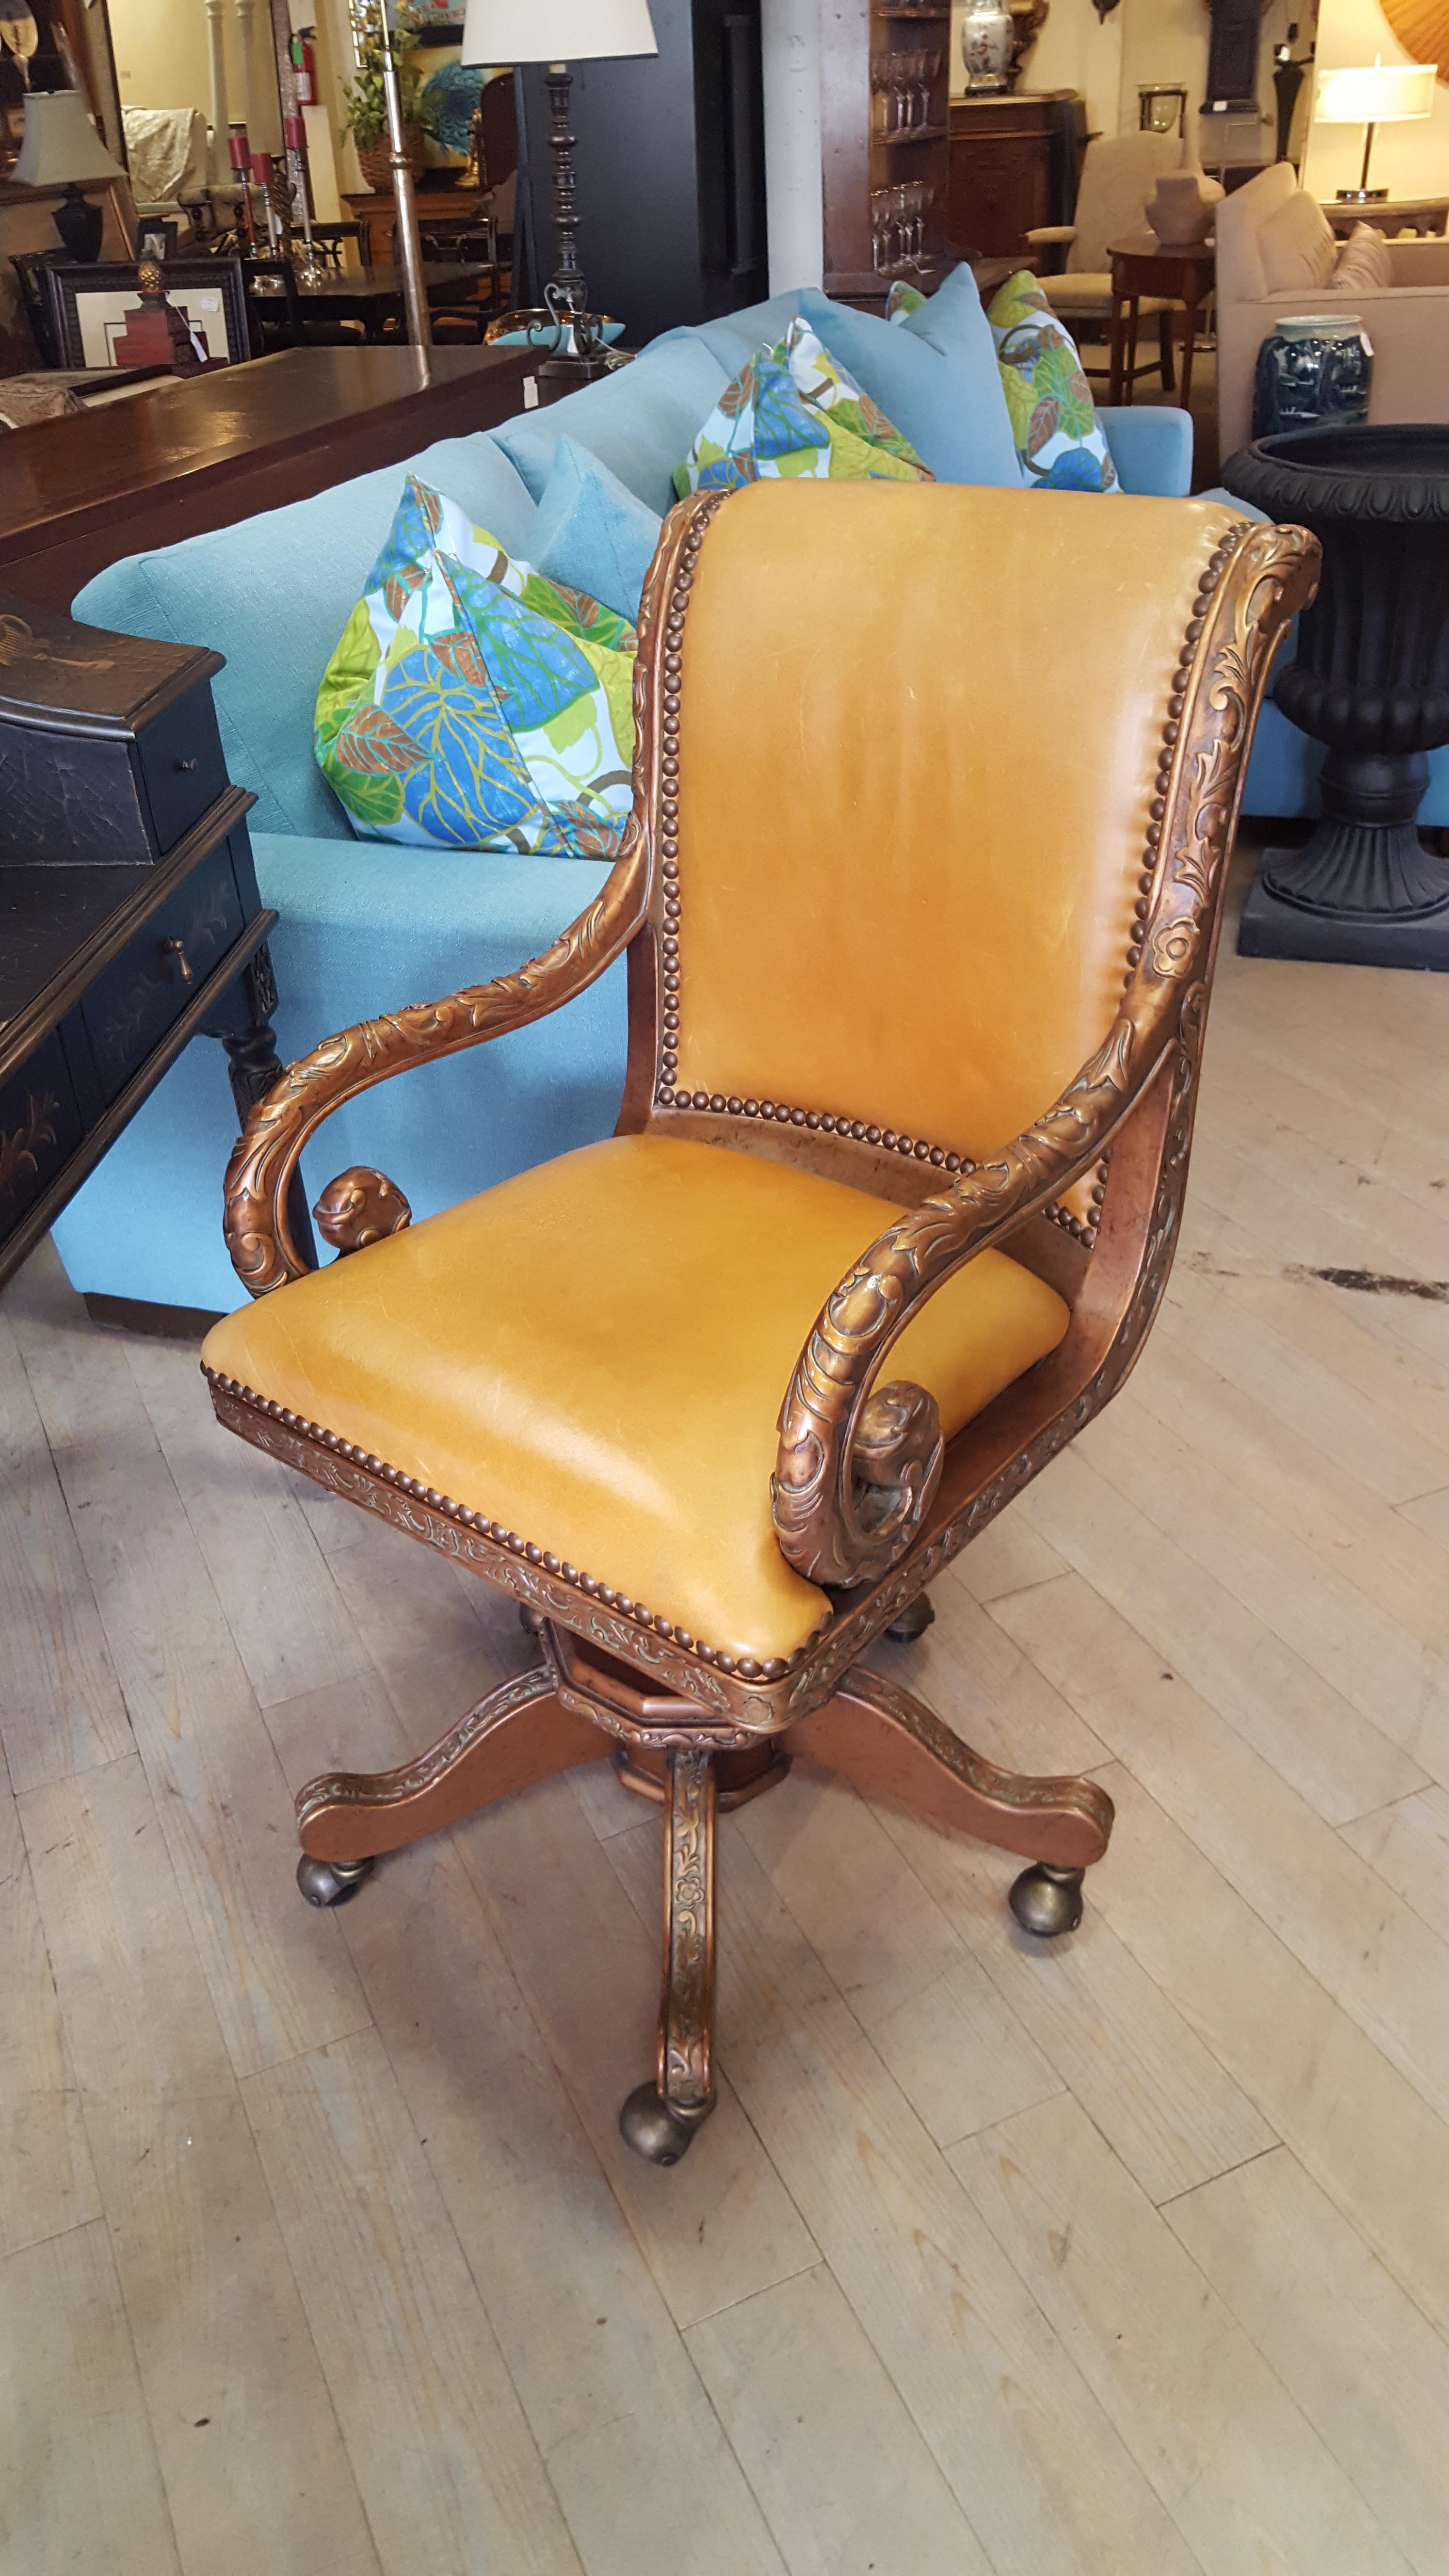 Hooker leather office chair on Chairs, Benches, Stools Price: $625.00